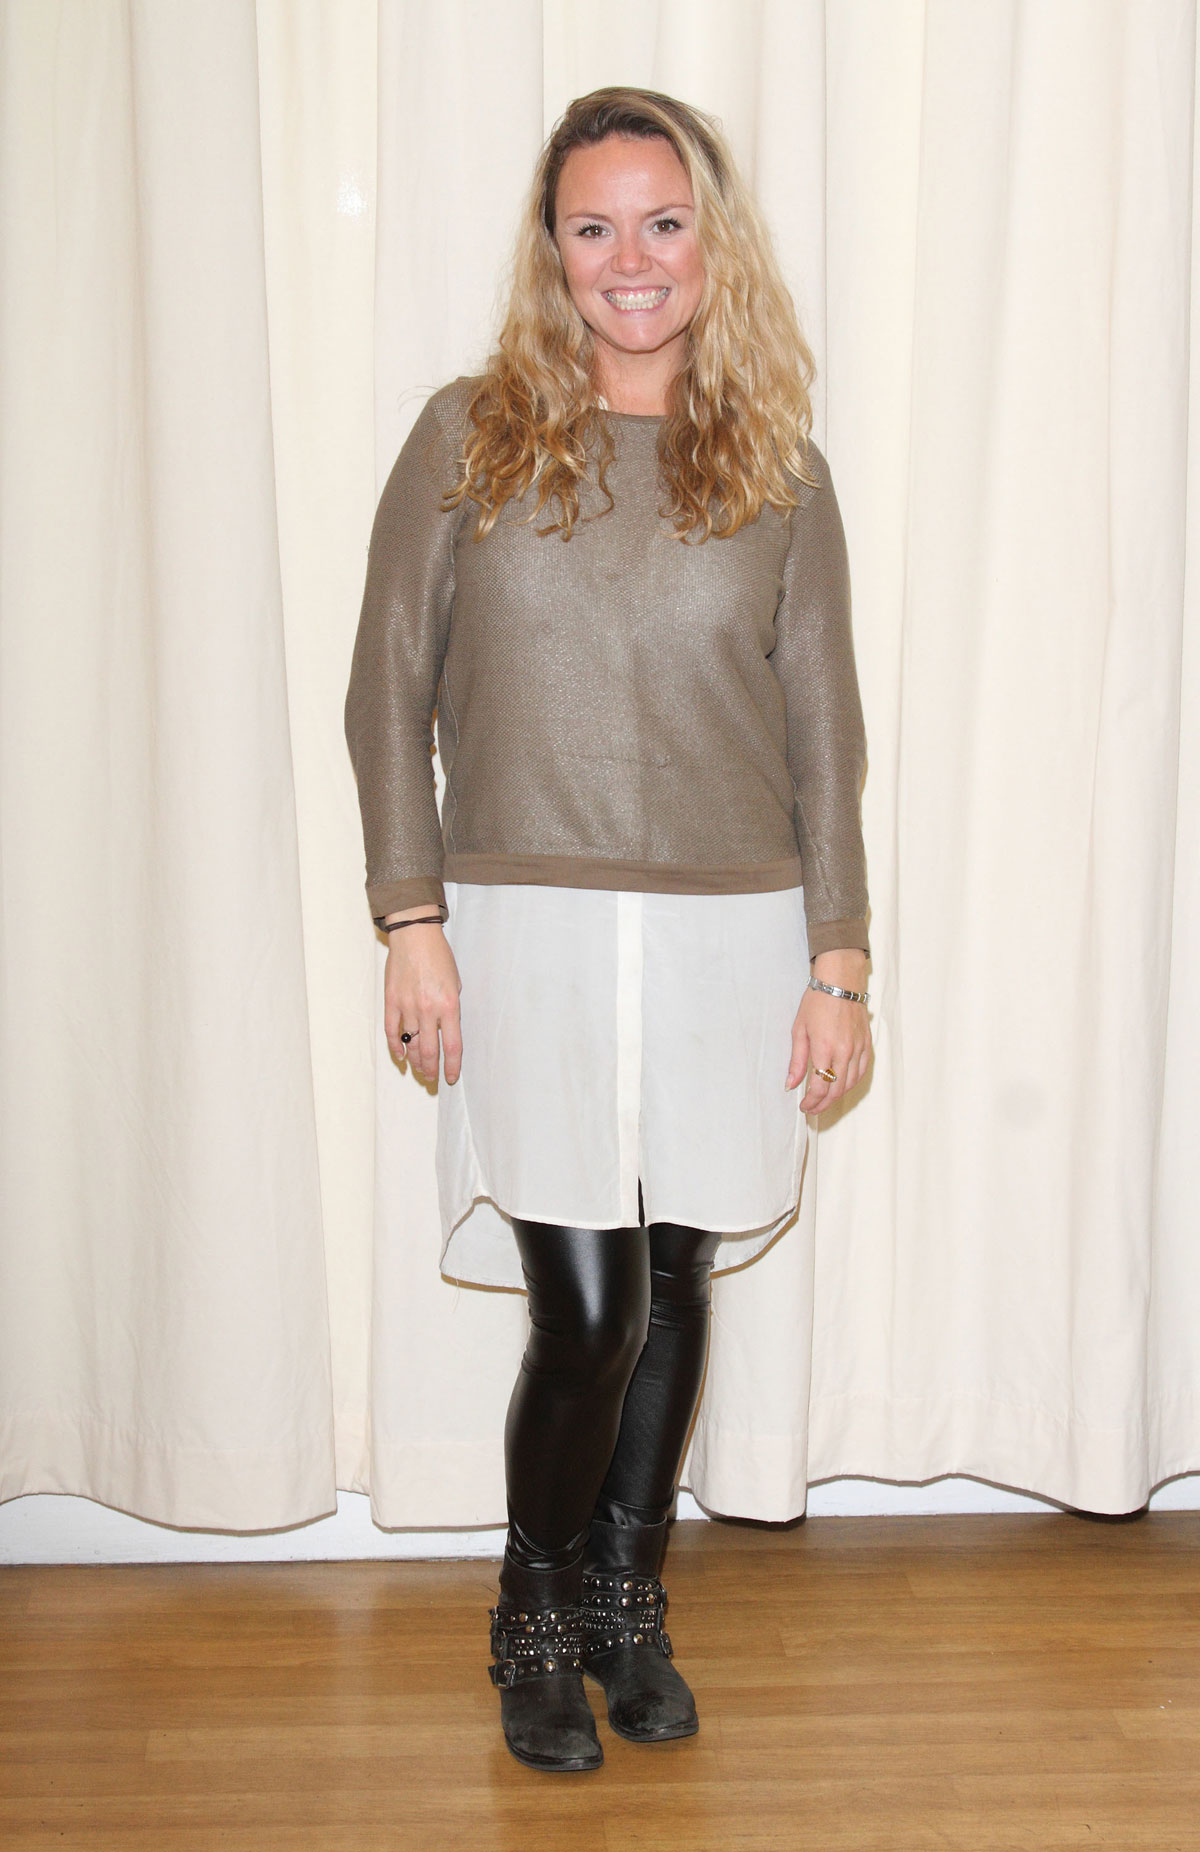 Charlie Brooks Attends Beautiful Thing Photocall Leather